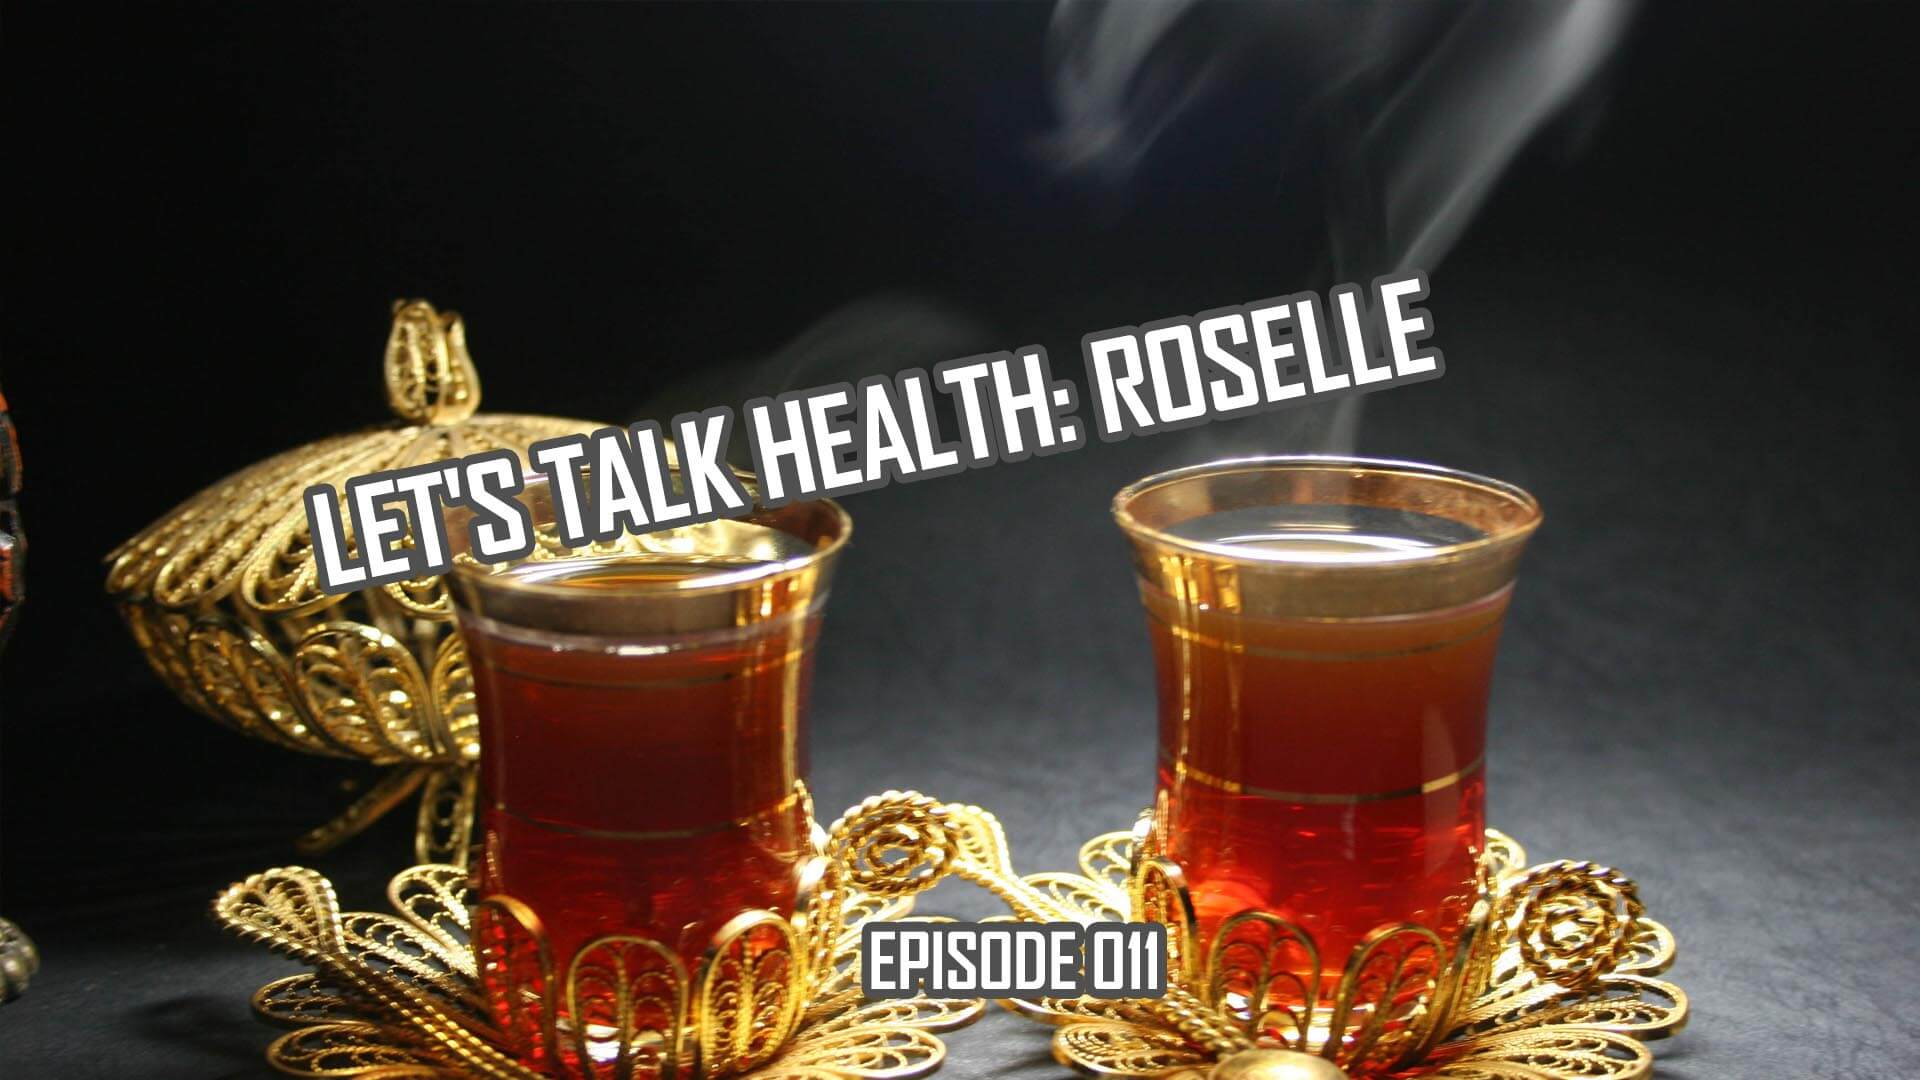 Let's Talk Health: Roselle History and Health Effects (011)